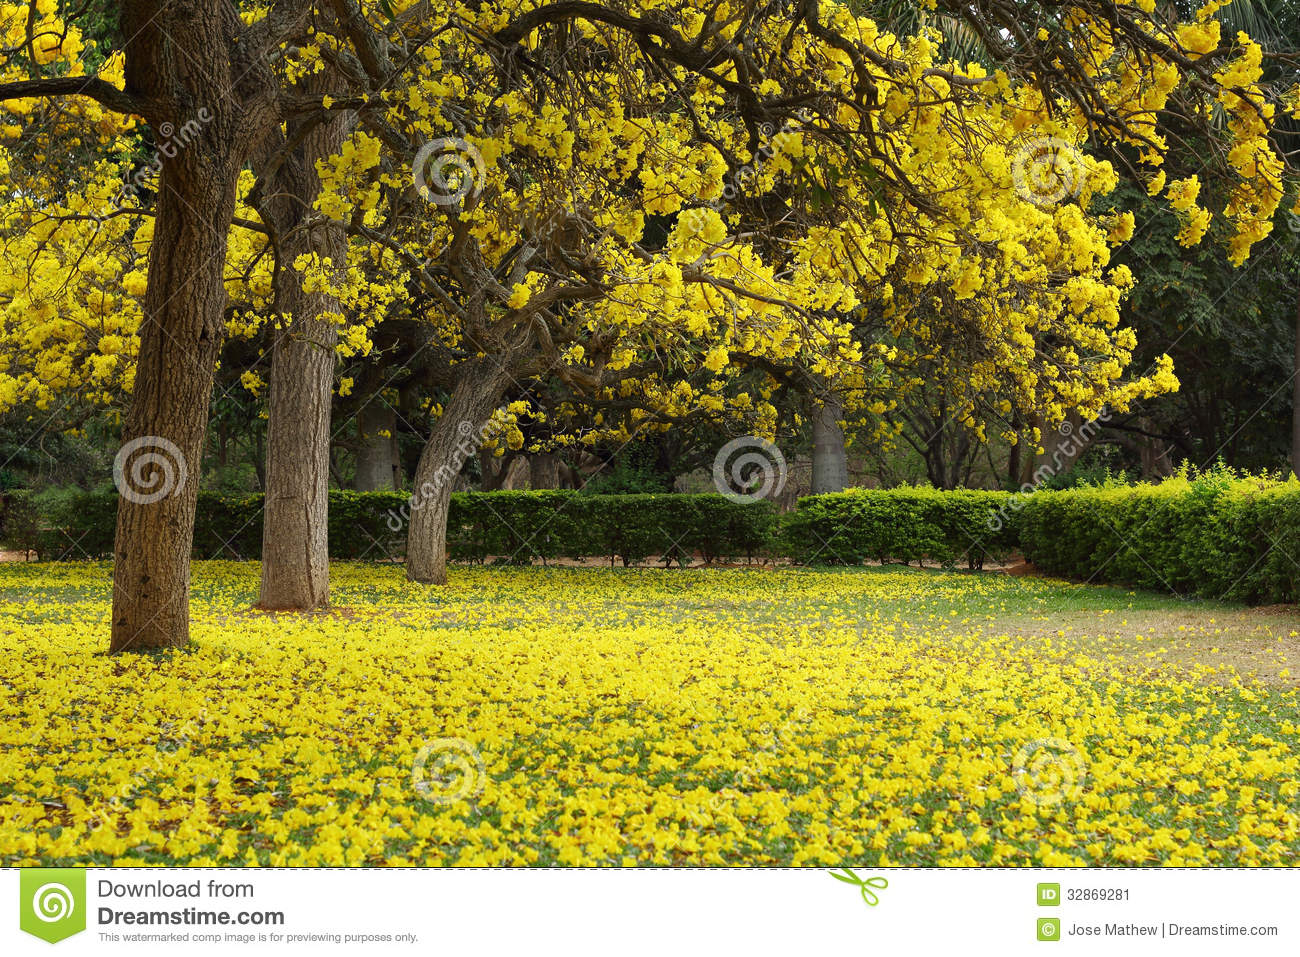 Tabebuia argentea trees in full bloom stock image image of download comp mightylinksfo